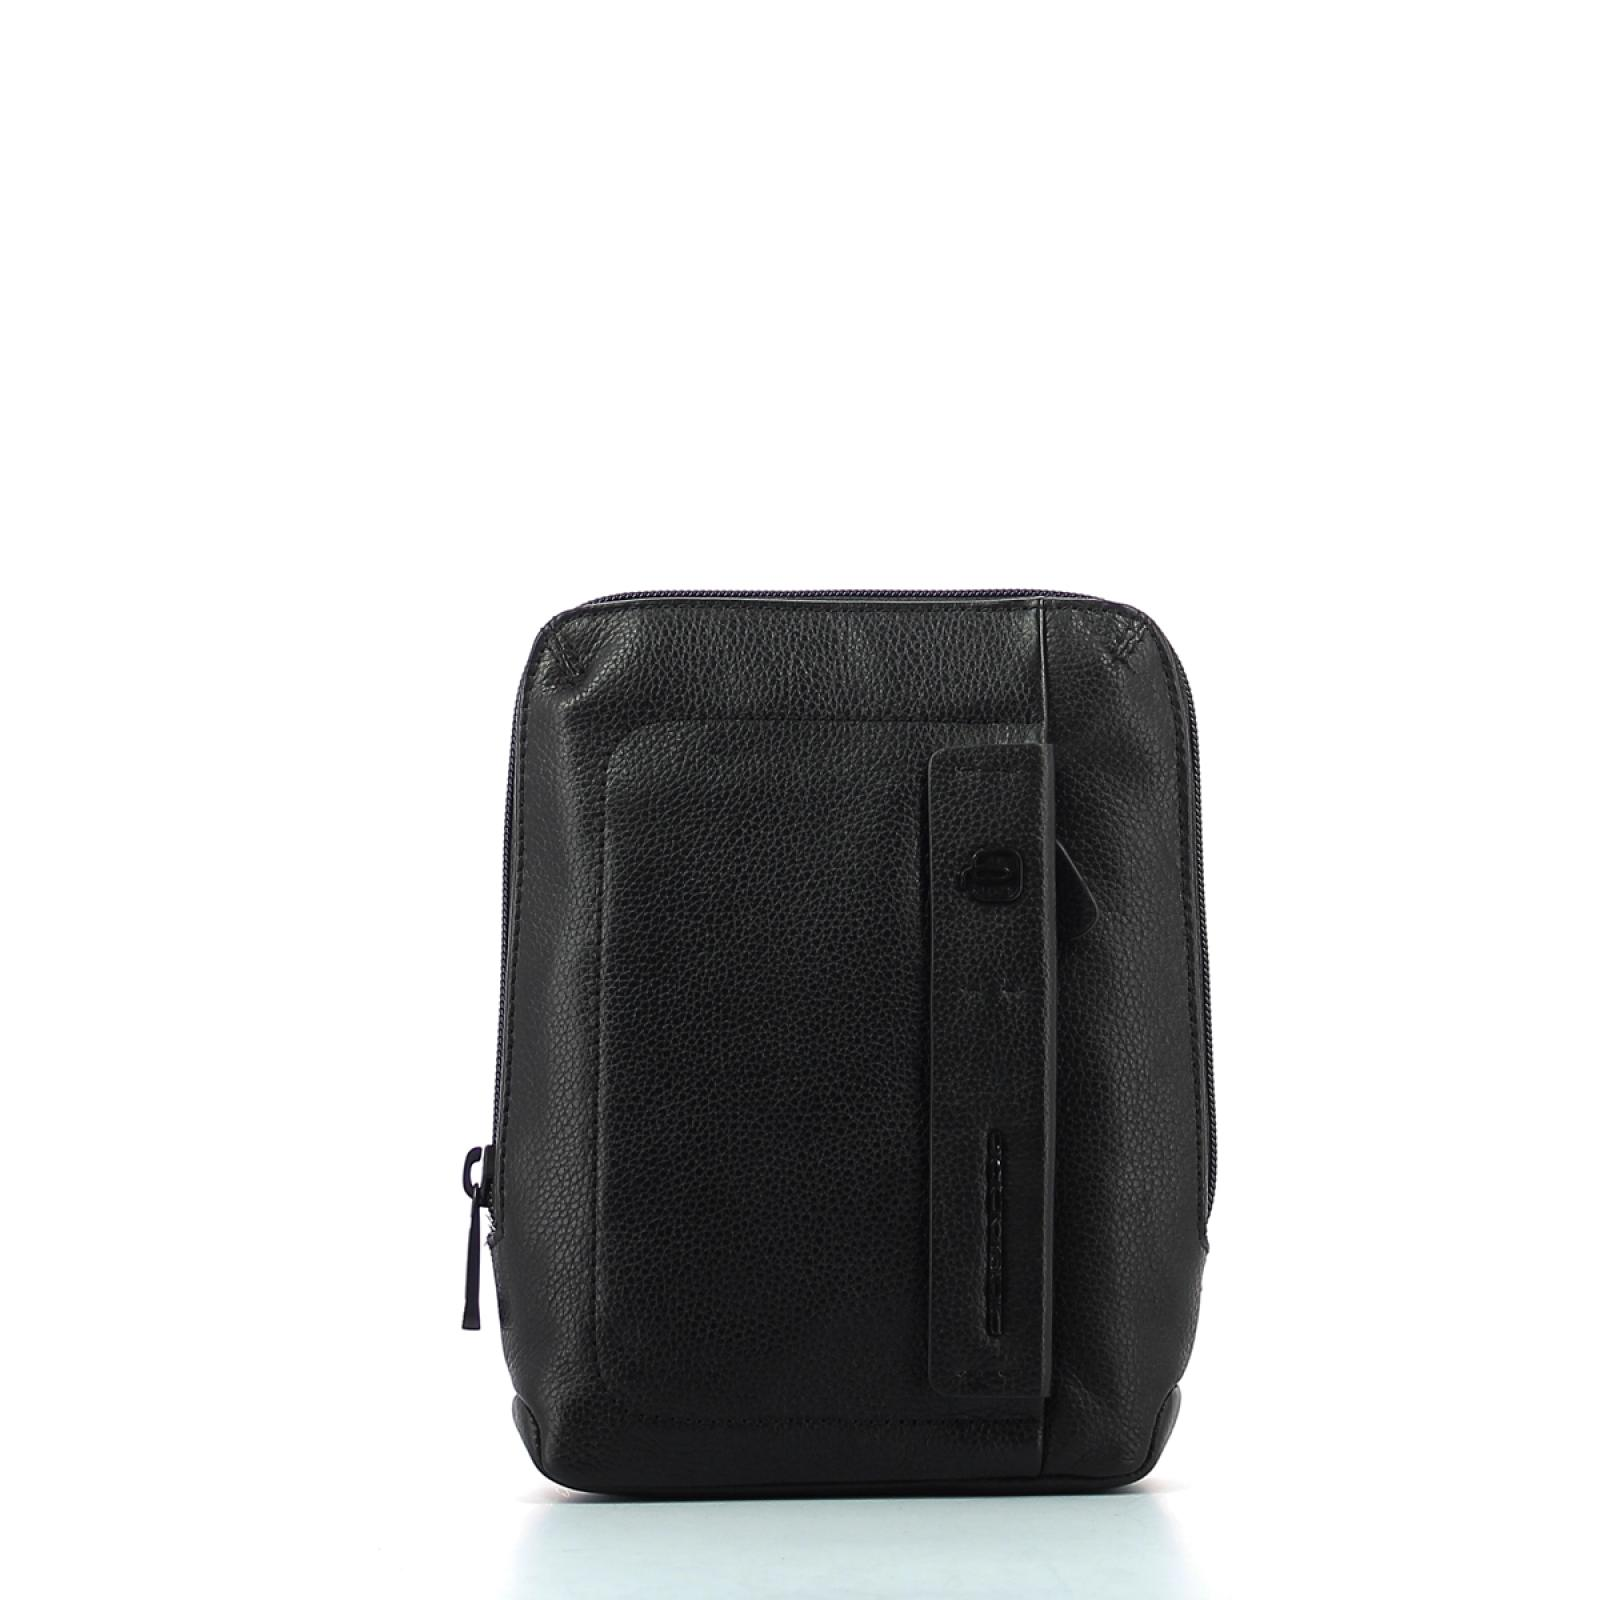 Organised Crossbody P15 Plus-NERO-UN